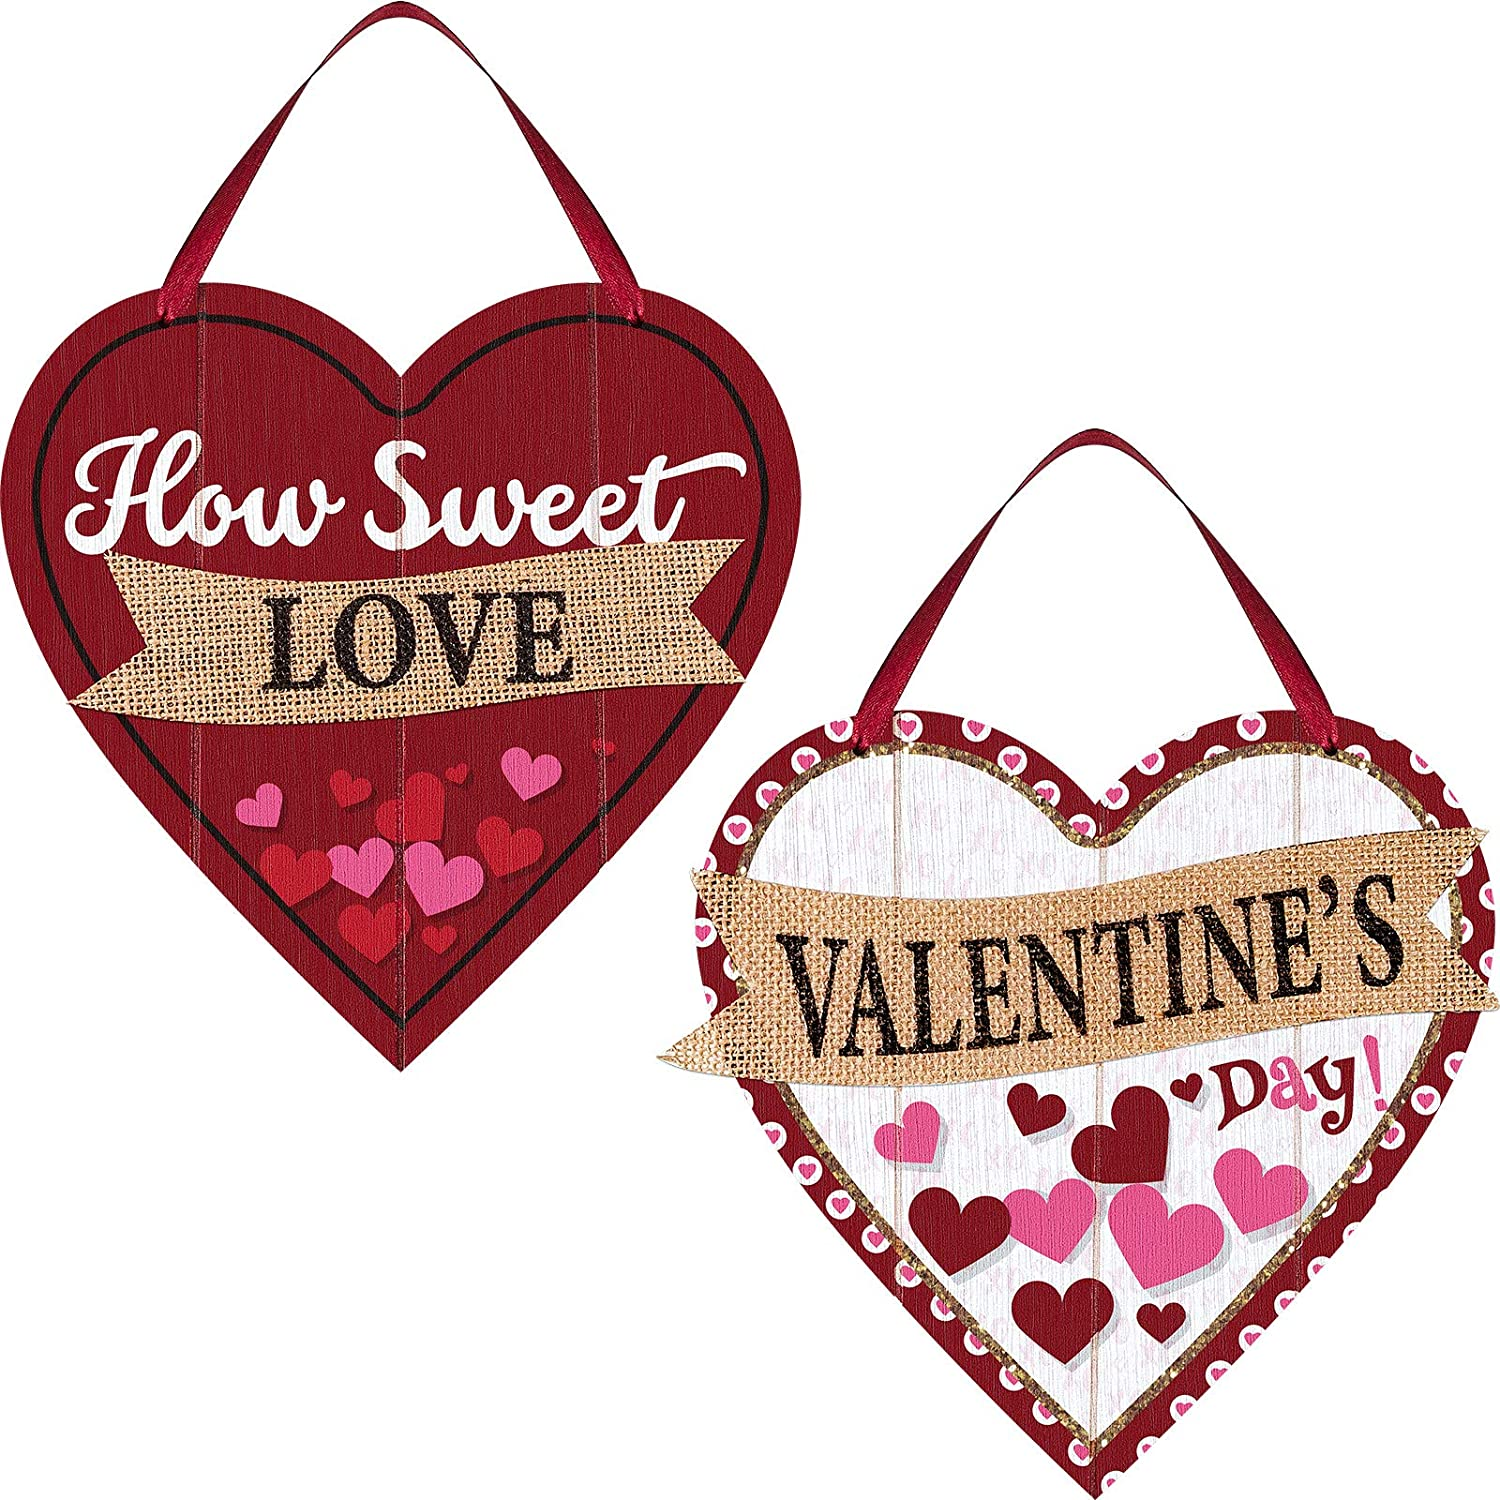 Patelai 2 Pieces Valentine's Day Wooden Sign Decoration Heart Shape Wall Plaque Valentine's Heart Wall Sign Decoration Red Heart Hanging Sign for Table Window Door Wall Decor